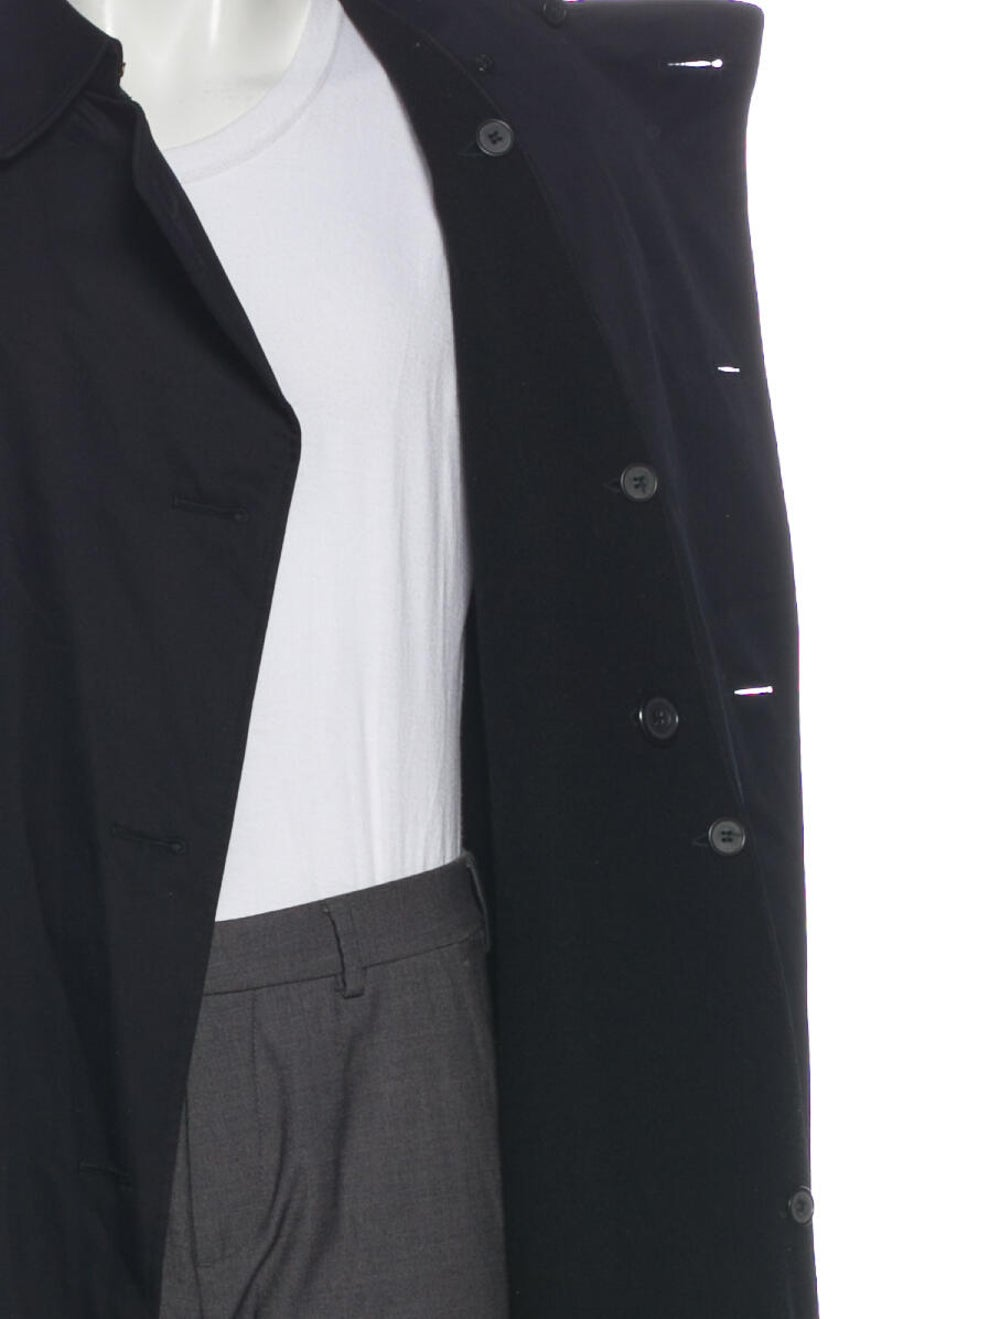 Aquascutum Trench Coat Black - image 4